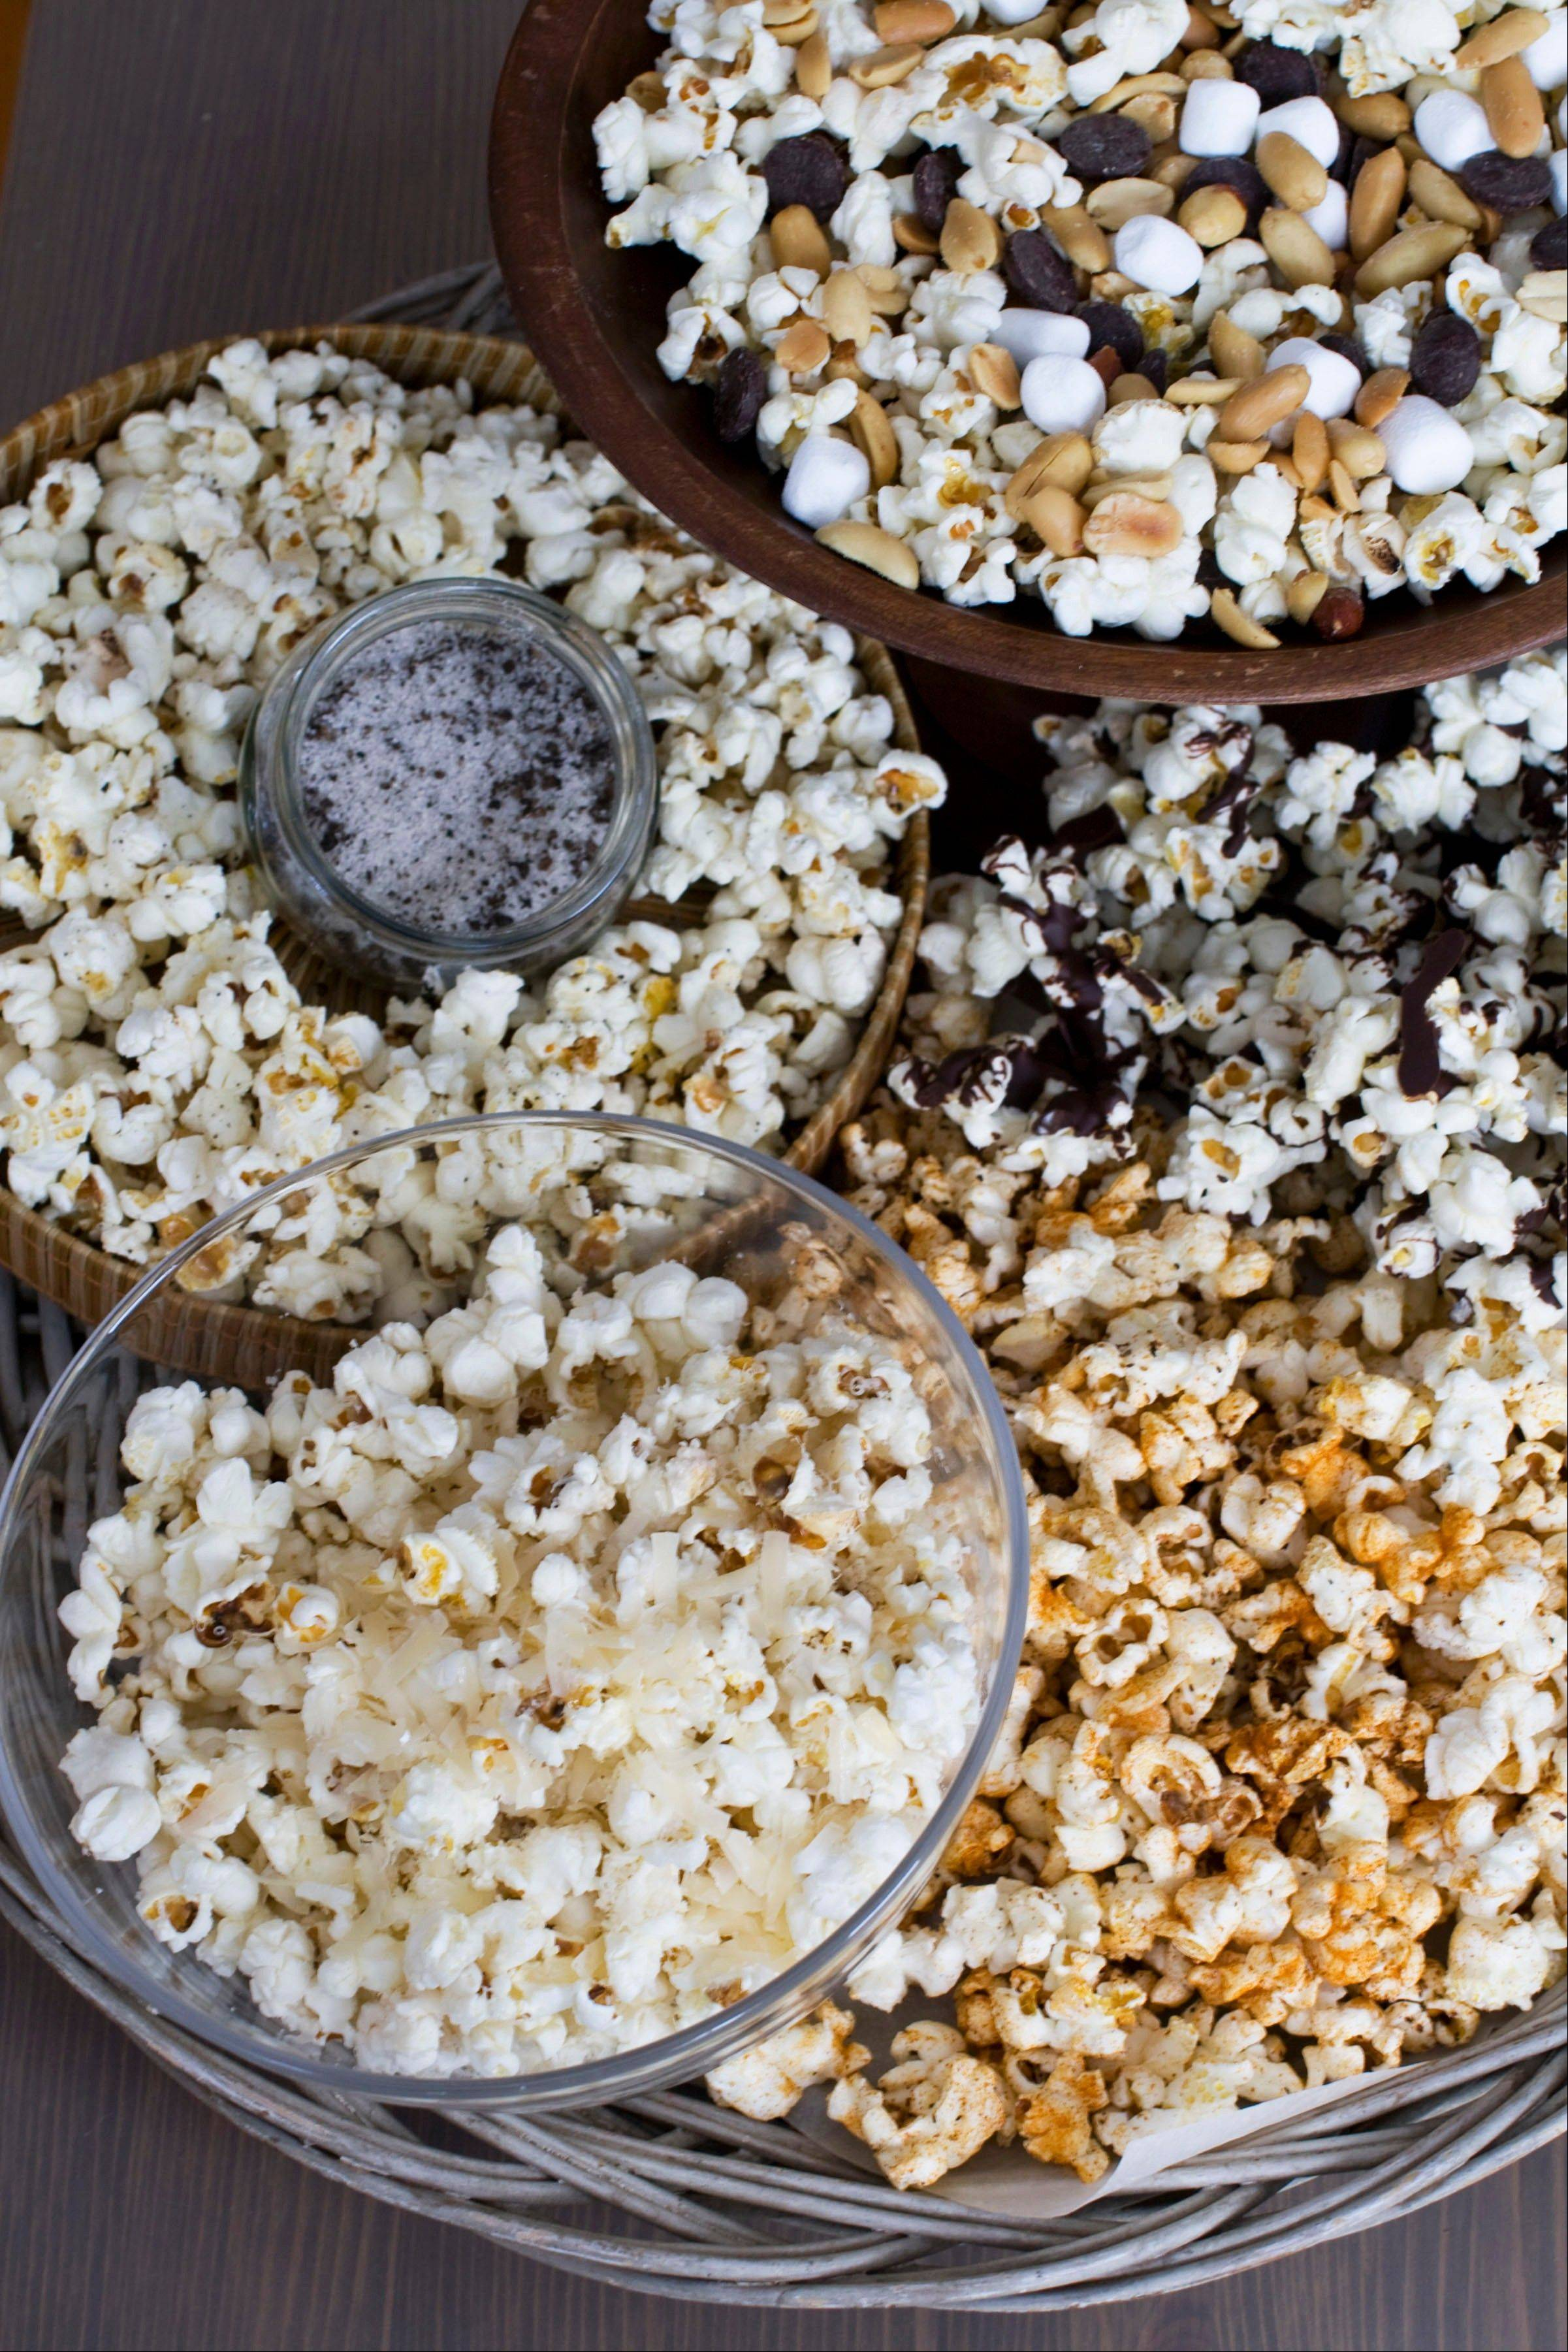 Stovetop Popcorn Many Ways, from top clockwise, mini marshmallows, chocolate chips and salted peanuts, melted chocolate, sweet and spicy barbeque rub, finely grated parmesan cheese, and truffle salt.